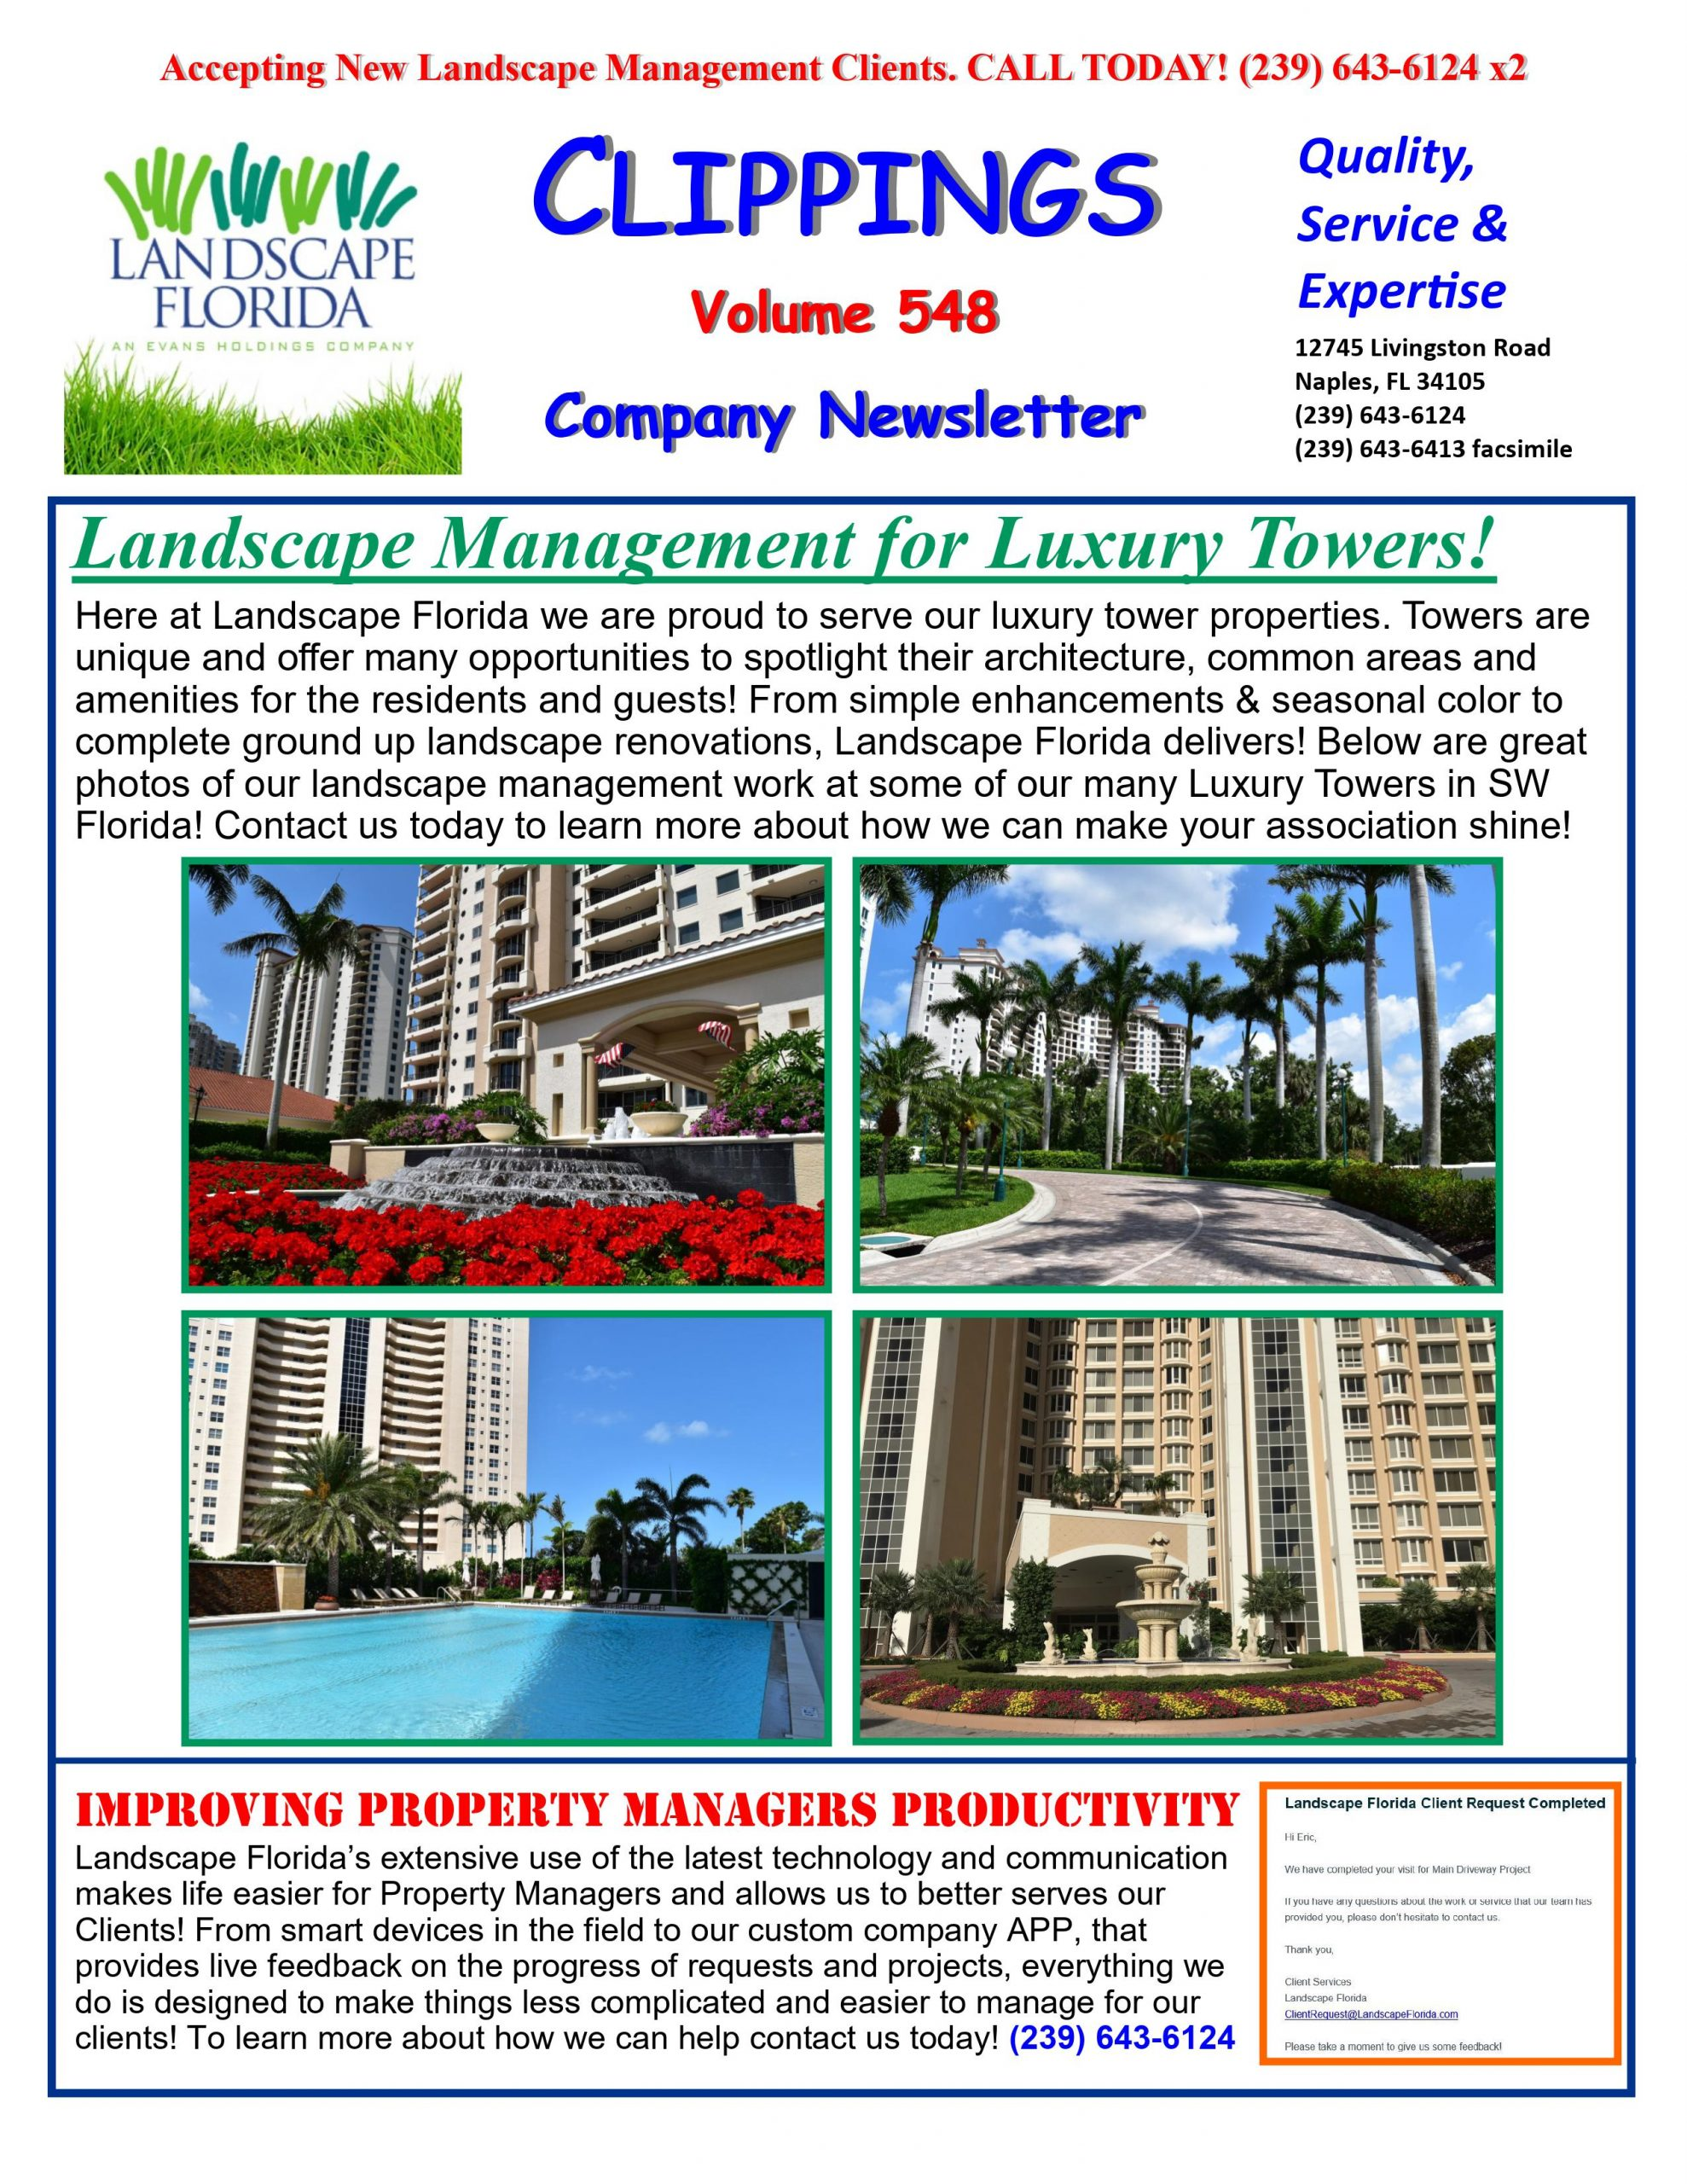 Landscape Florida Publication Clippings Volume 548 Company Newsletter | Southwest Florida Landscape Design and Maintenance